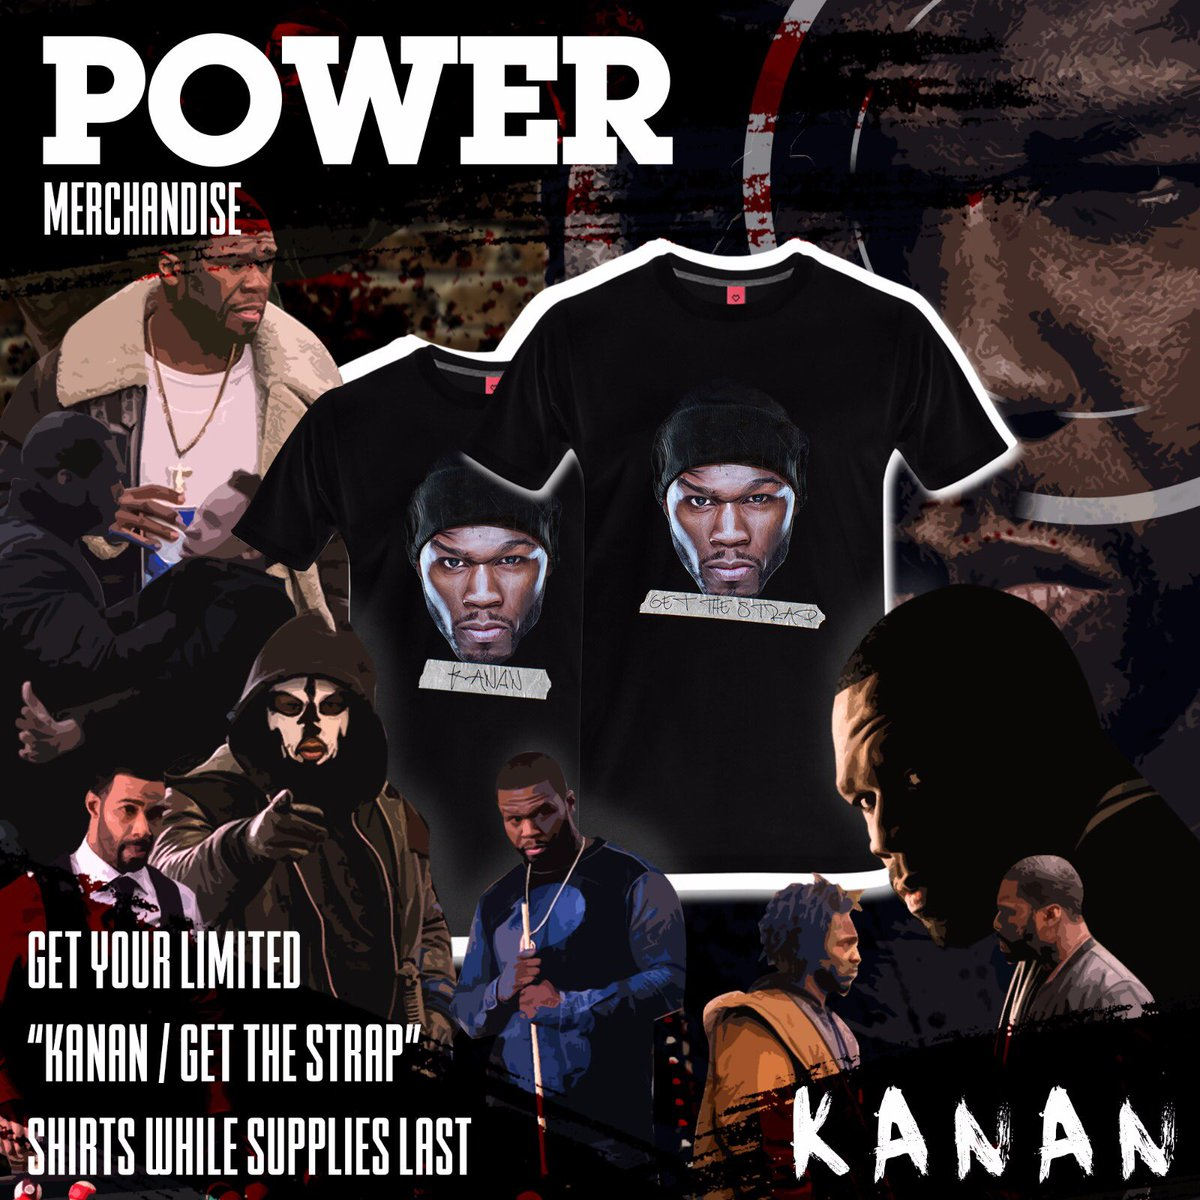 Get your #KANAN gear now... https://t.co/Sq04SU4Mvh #powertv #getthestrap https://t.co/N126CBjurn